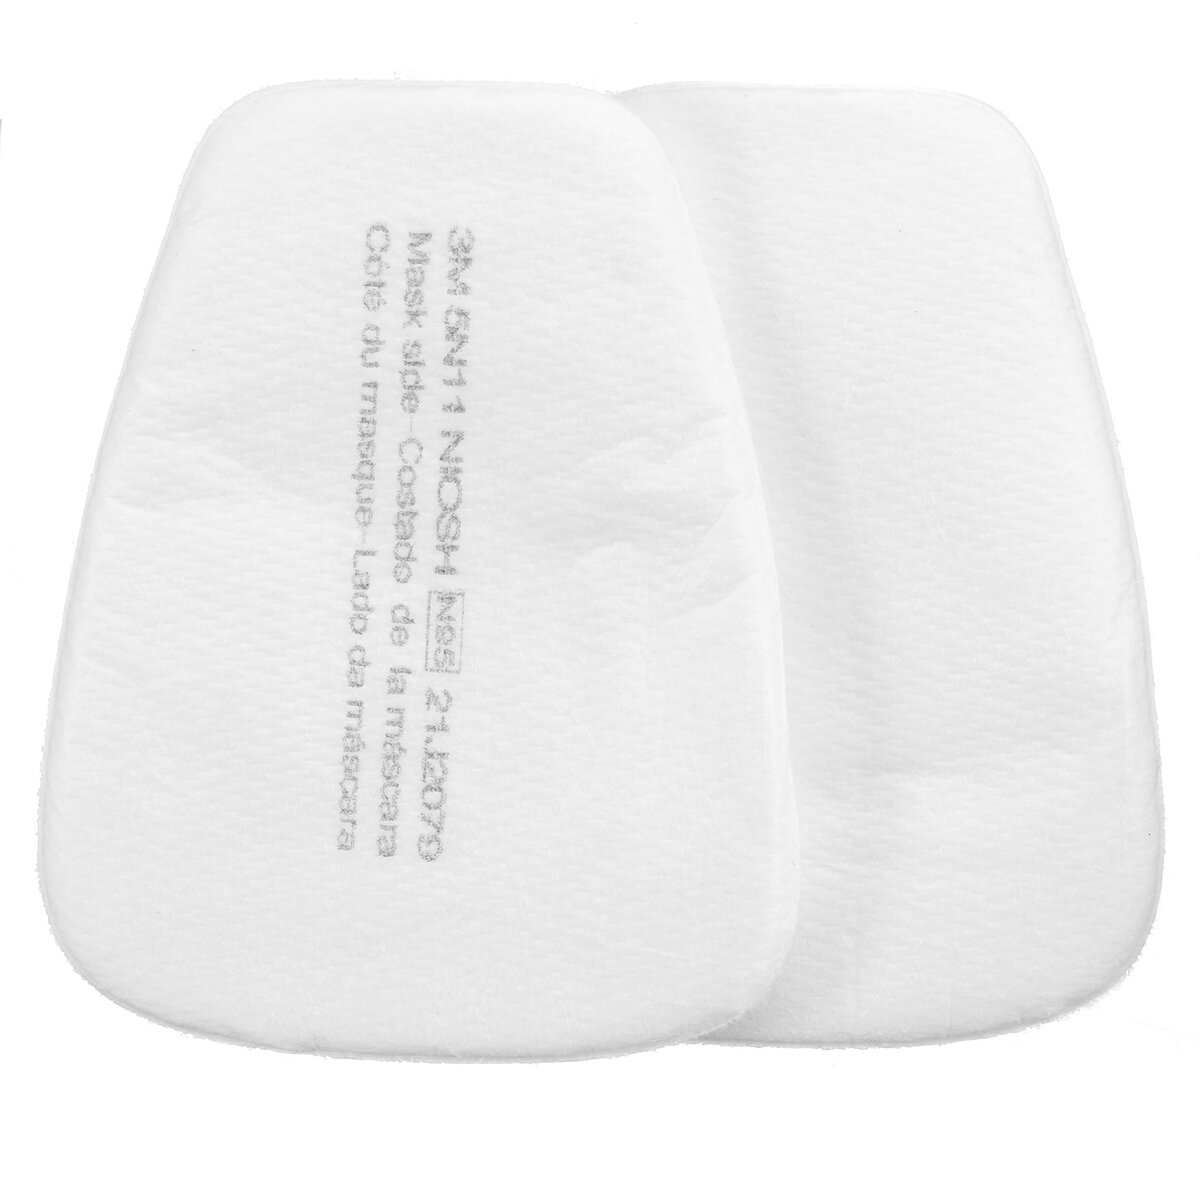 cotton filter cartridge mask respirator replace